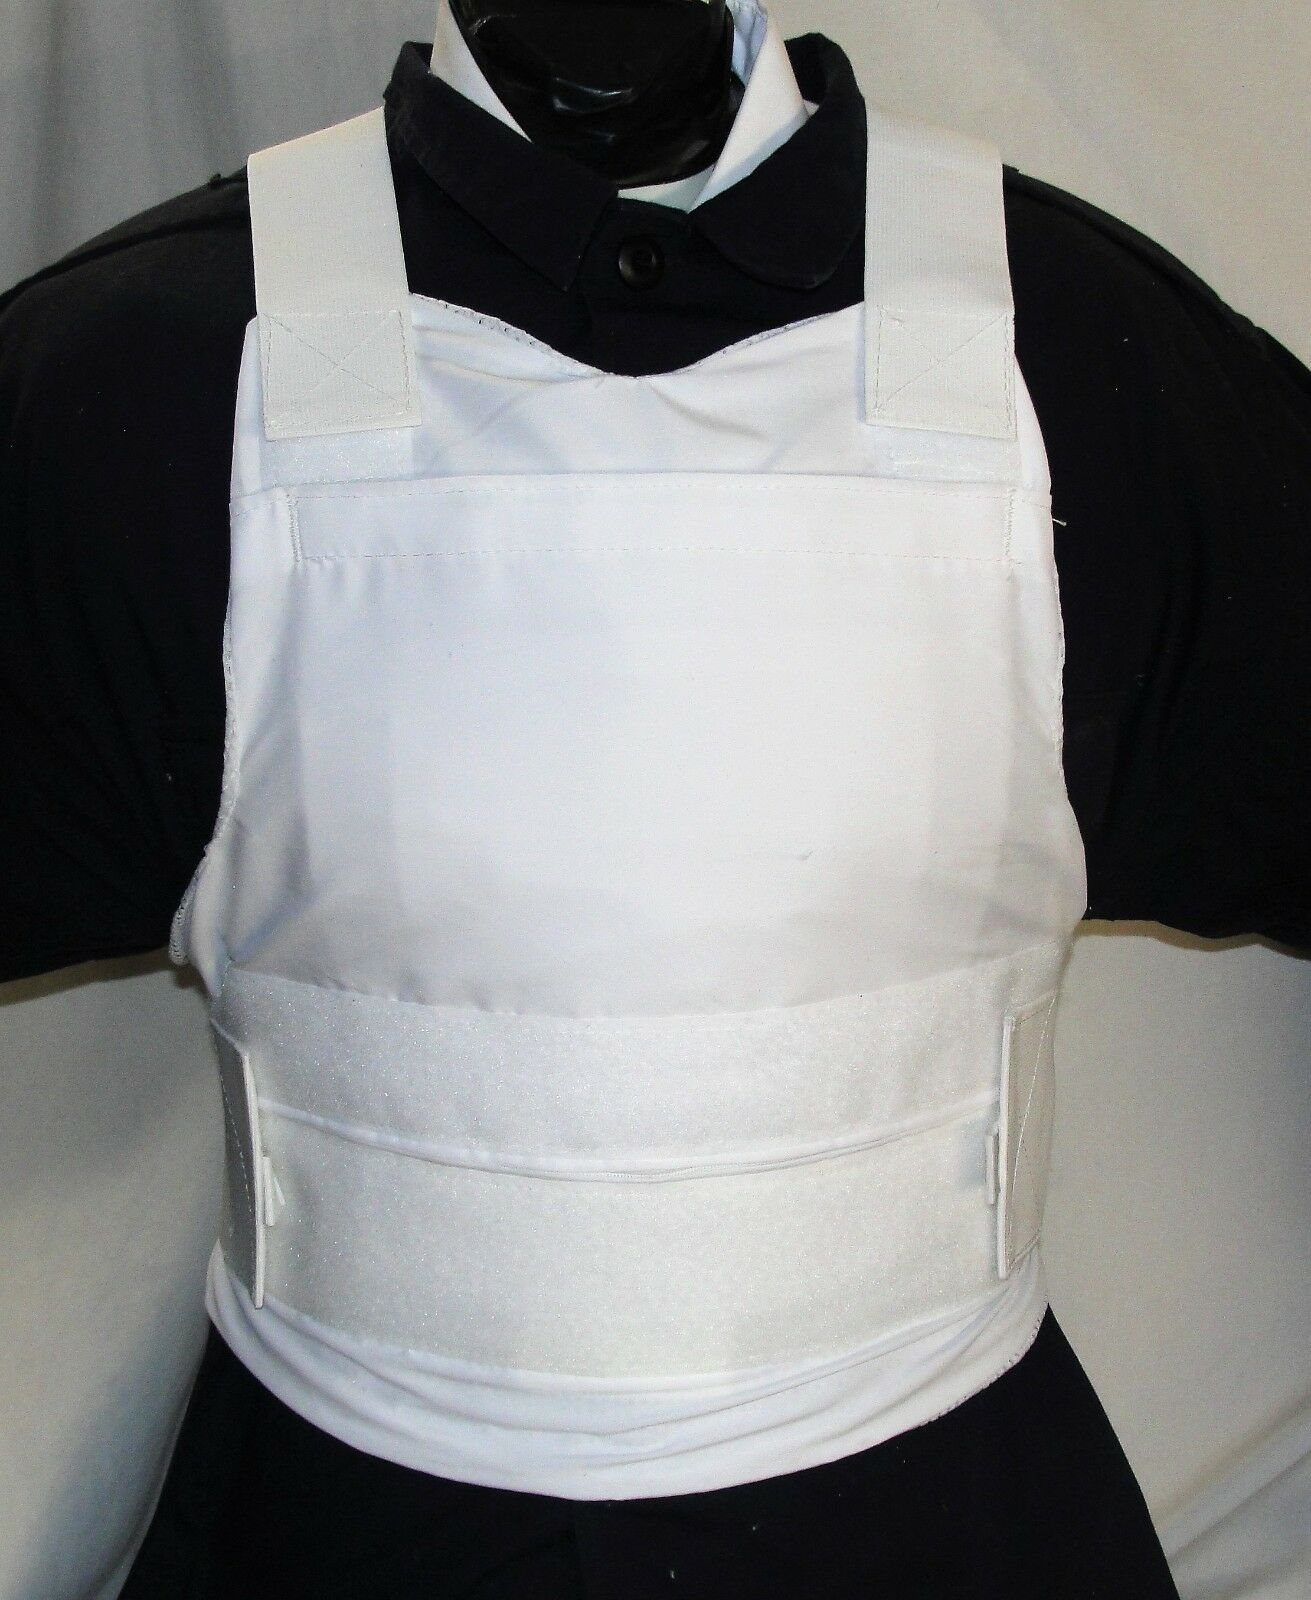 New Medium  Concealable Carrier IIIA Body Armor BulletProof Vest with Inserts  order online